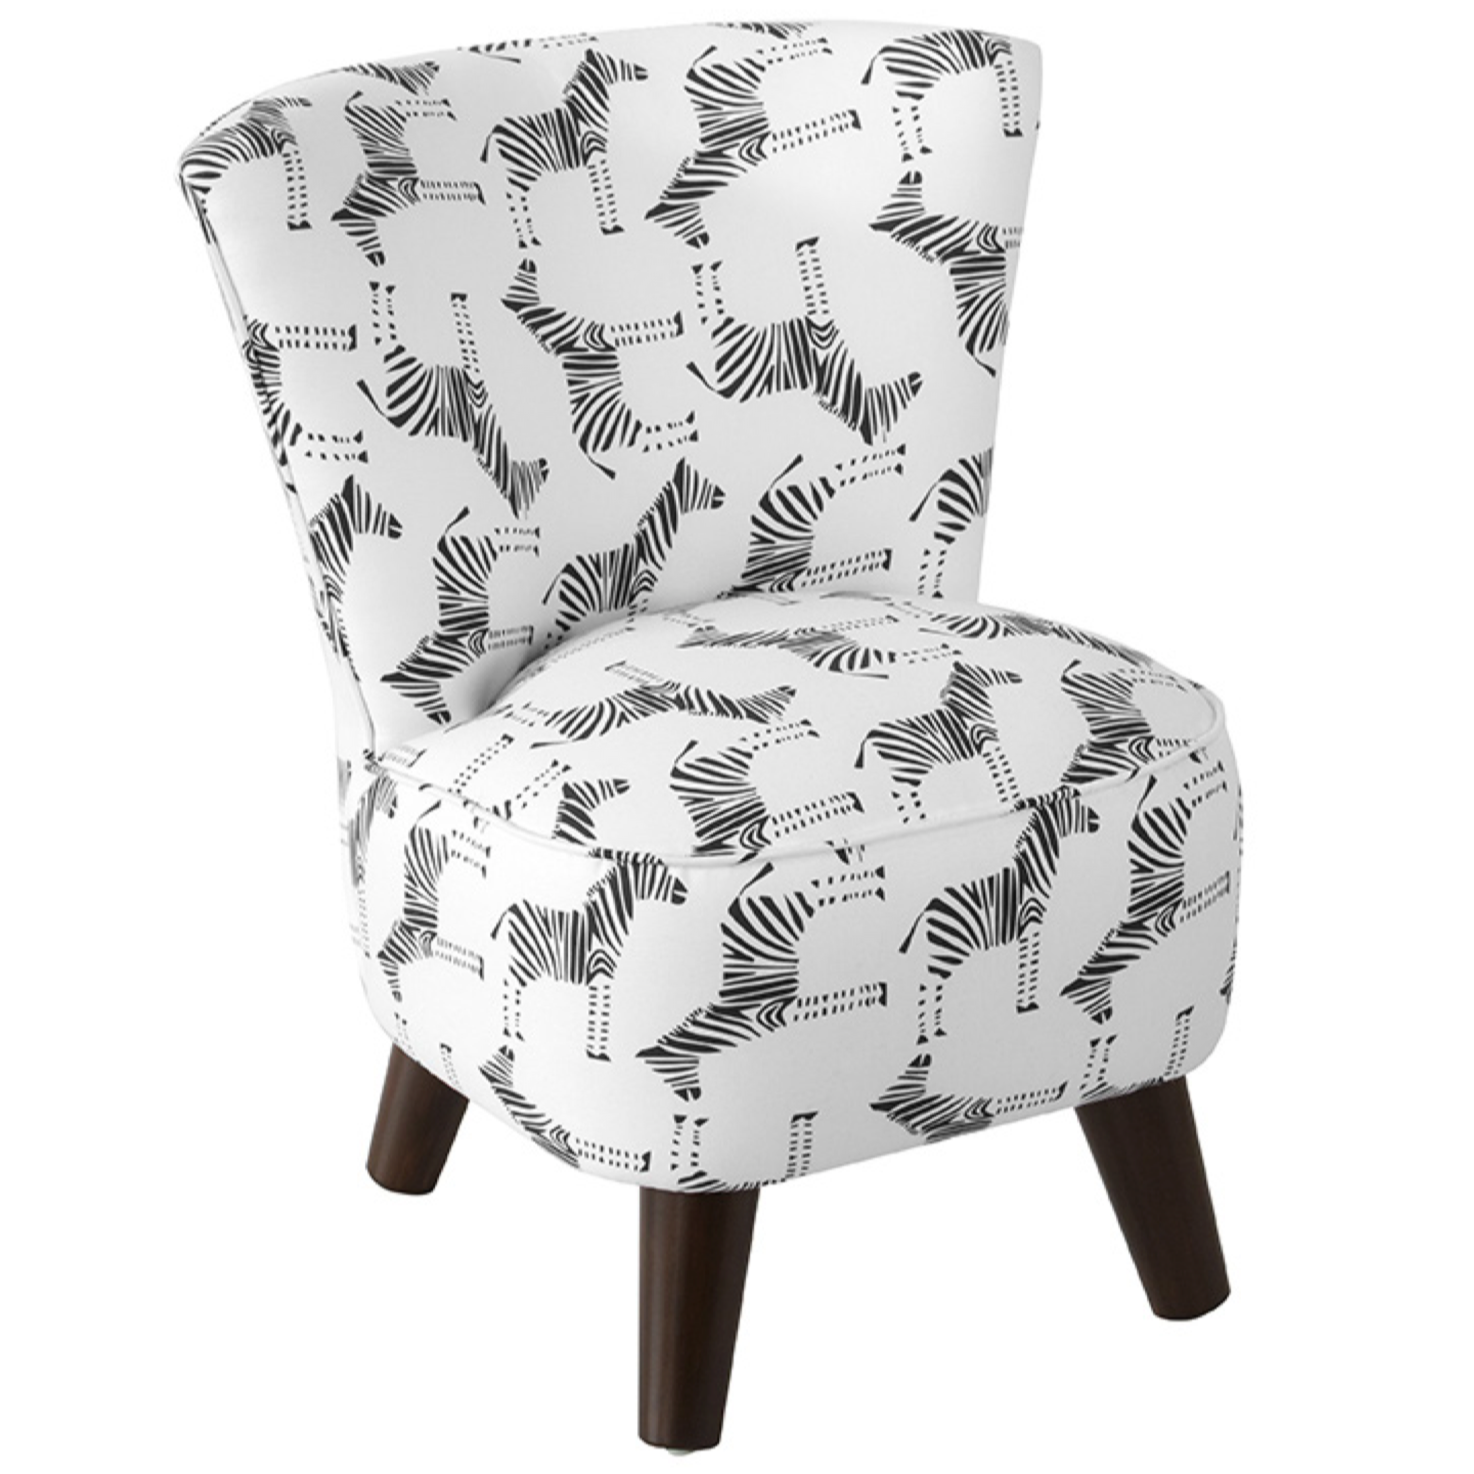 Thalia Kids Chair, Block Zebra